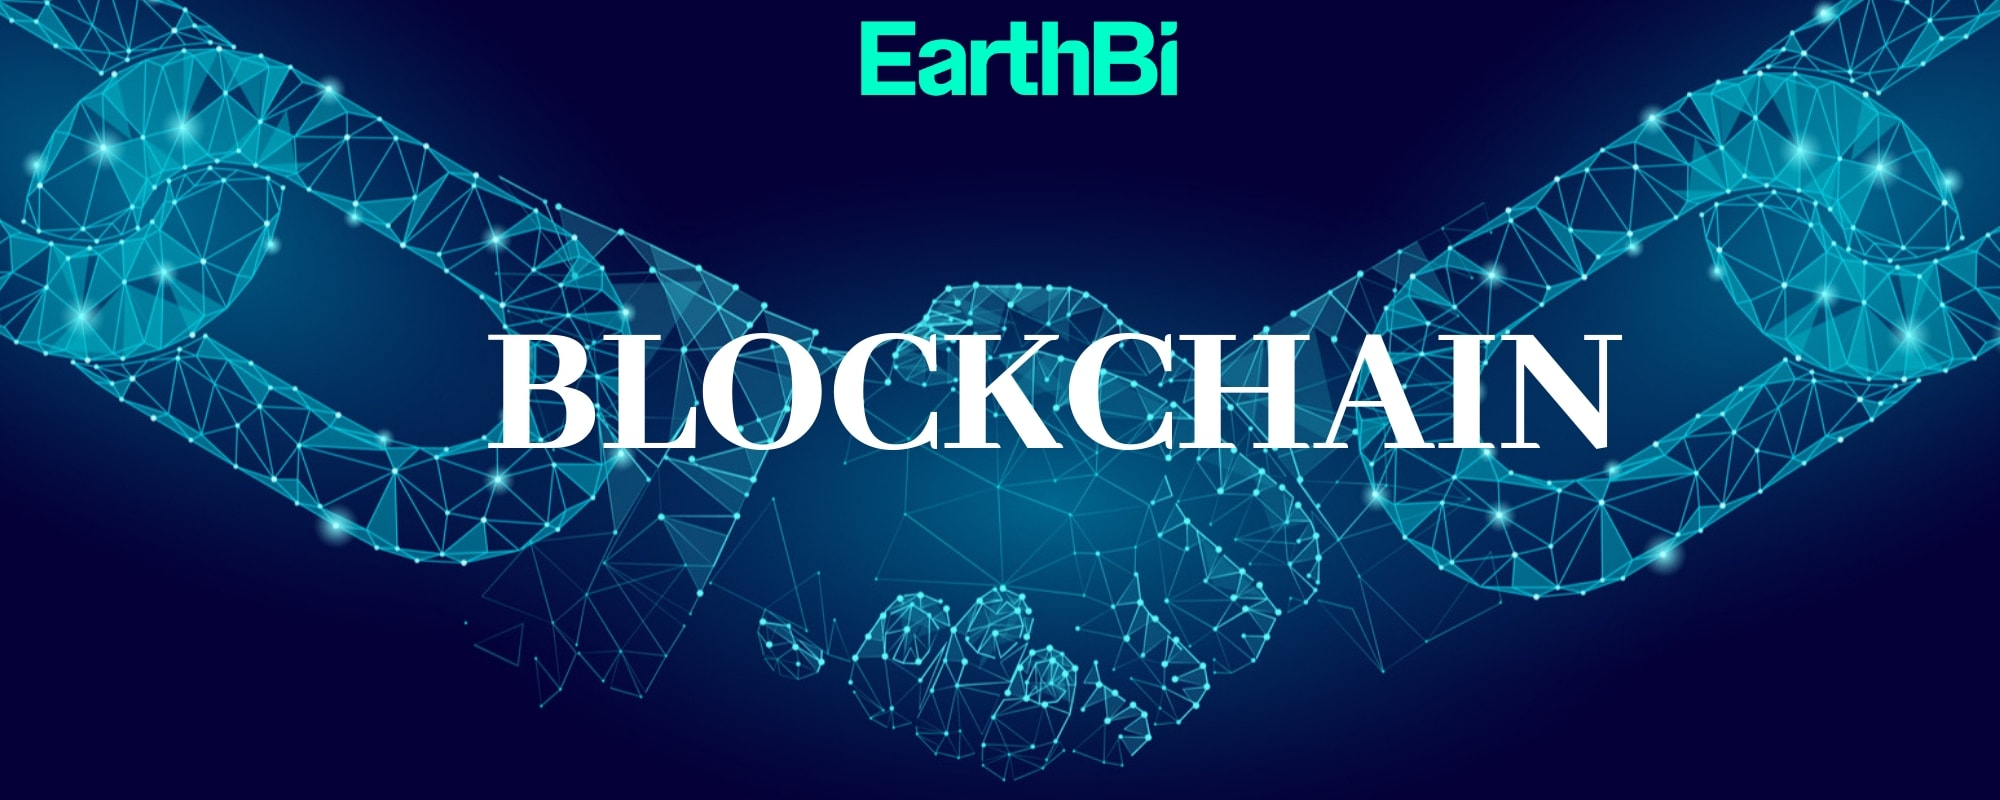 earthbi blockchain